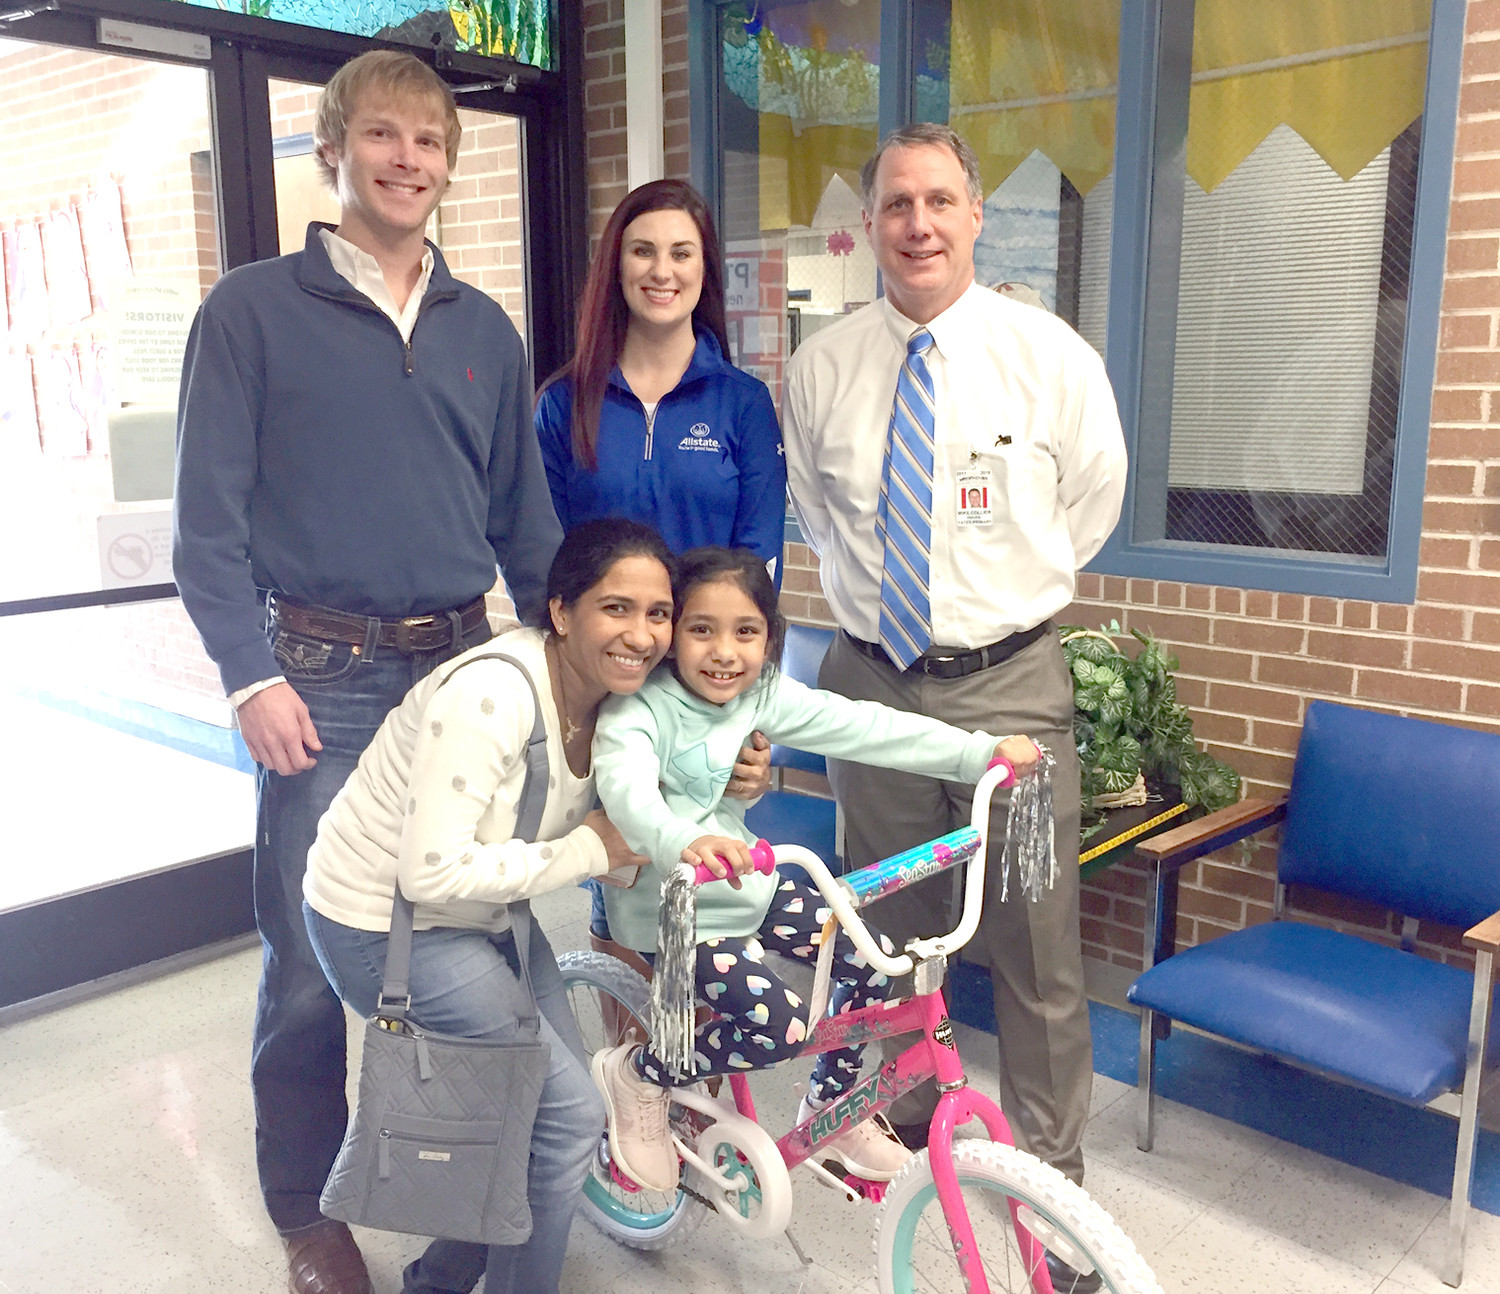 Grant Johnson's Allstate Agency presented a bicycle to Aarzoo Patel at Yates Primary School, for having perfect attendance for the past nine weeks of school. Standing from left are Grant Johnson, Randi Johnson and Yates Principal Mike Collier. Hina Patel celebrates with her daughter, Aarzoo, in front.